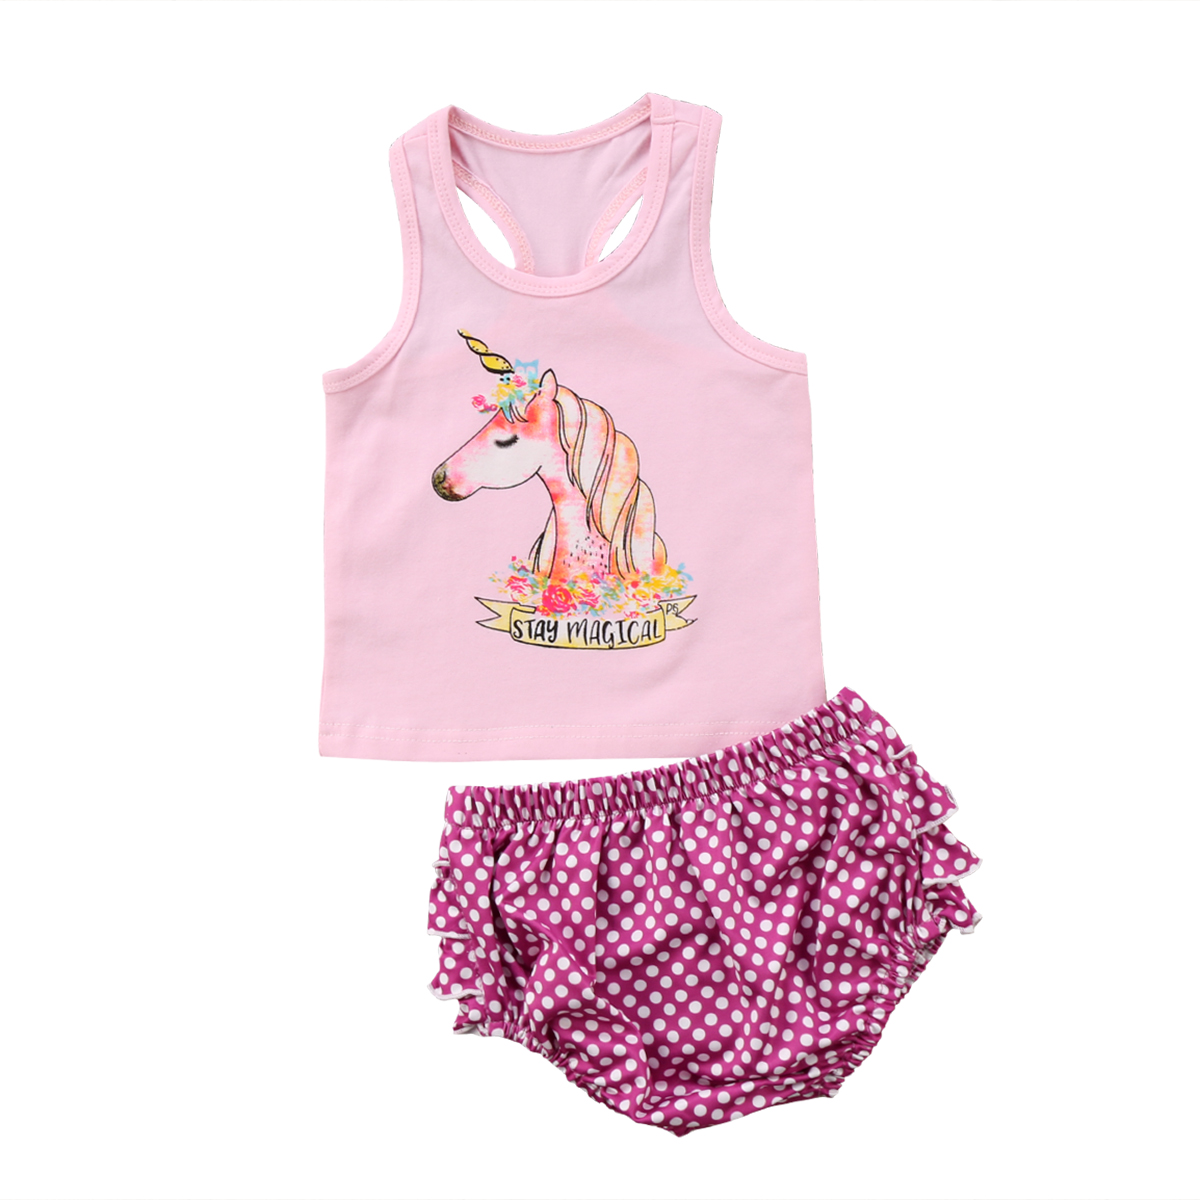 Newborn Toddler Baby Girl Unicorn Clothes Sets Tops Sleeveless Ruffled Shorts Summer New Outfits Set 0-2T